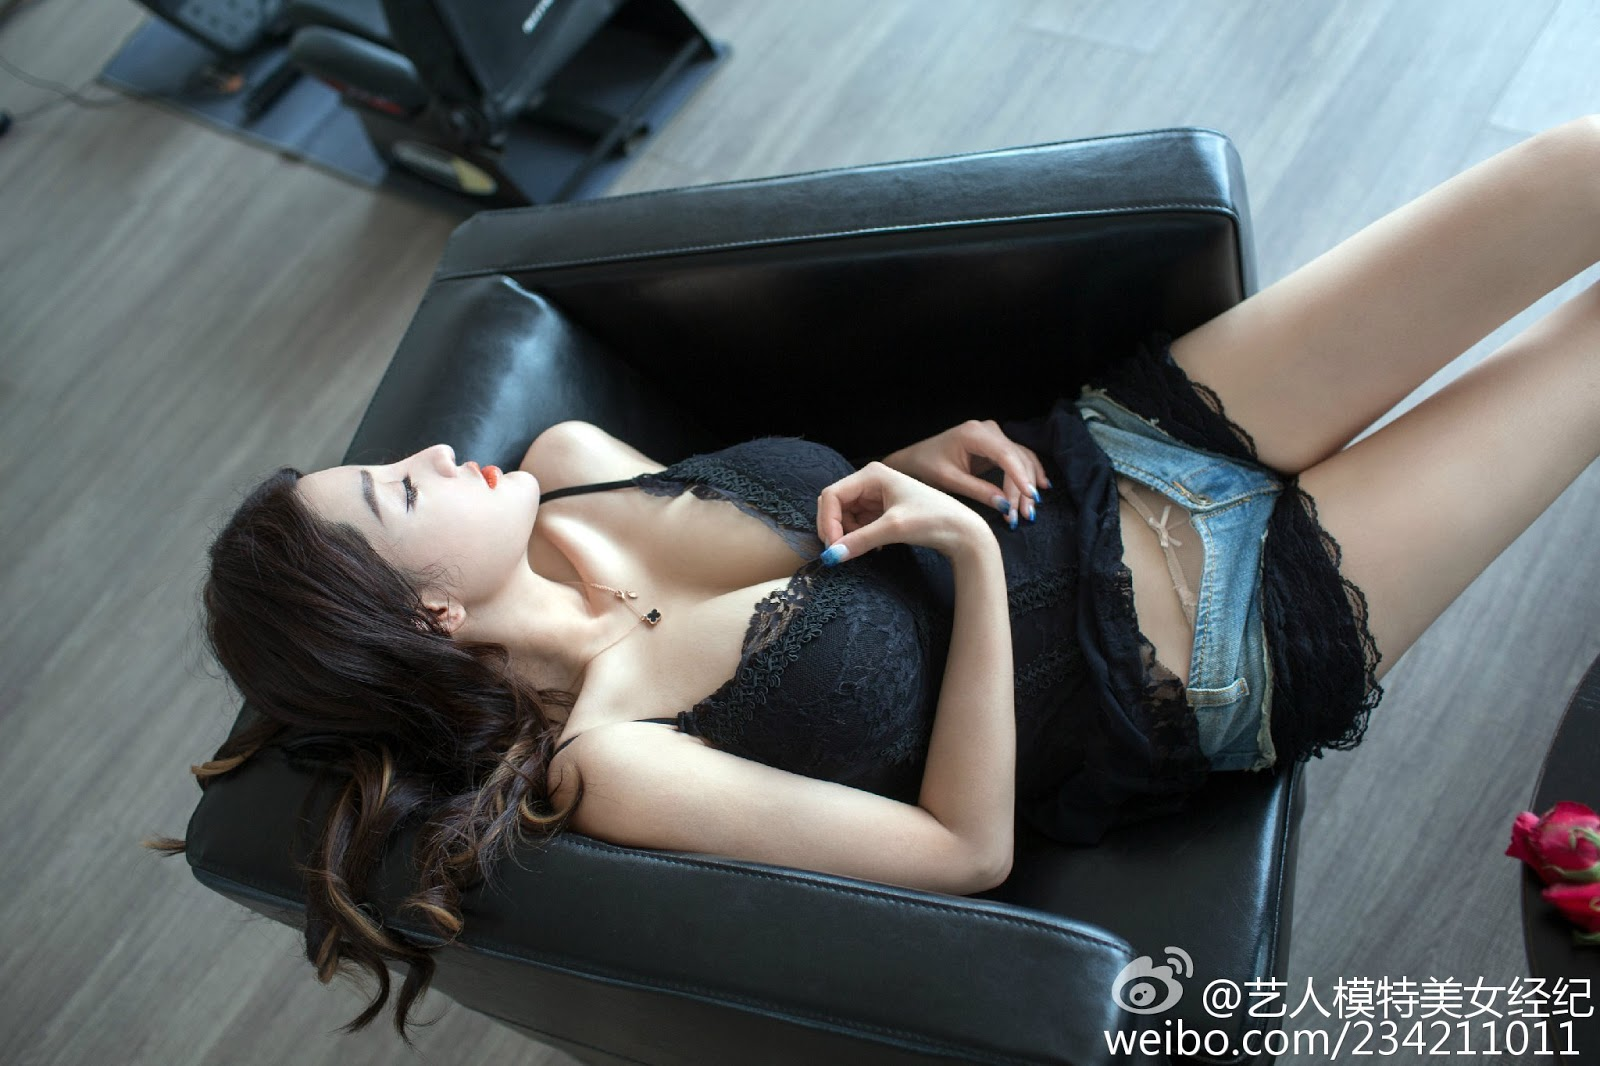 Superb Busty Chinese Mai Ping Guo 麦苹果 Perfect Nude Model